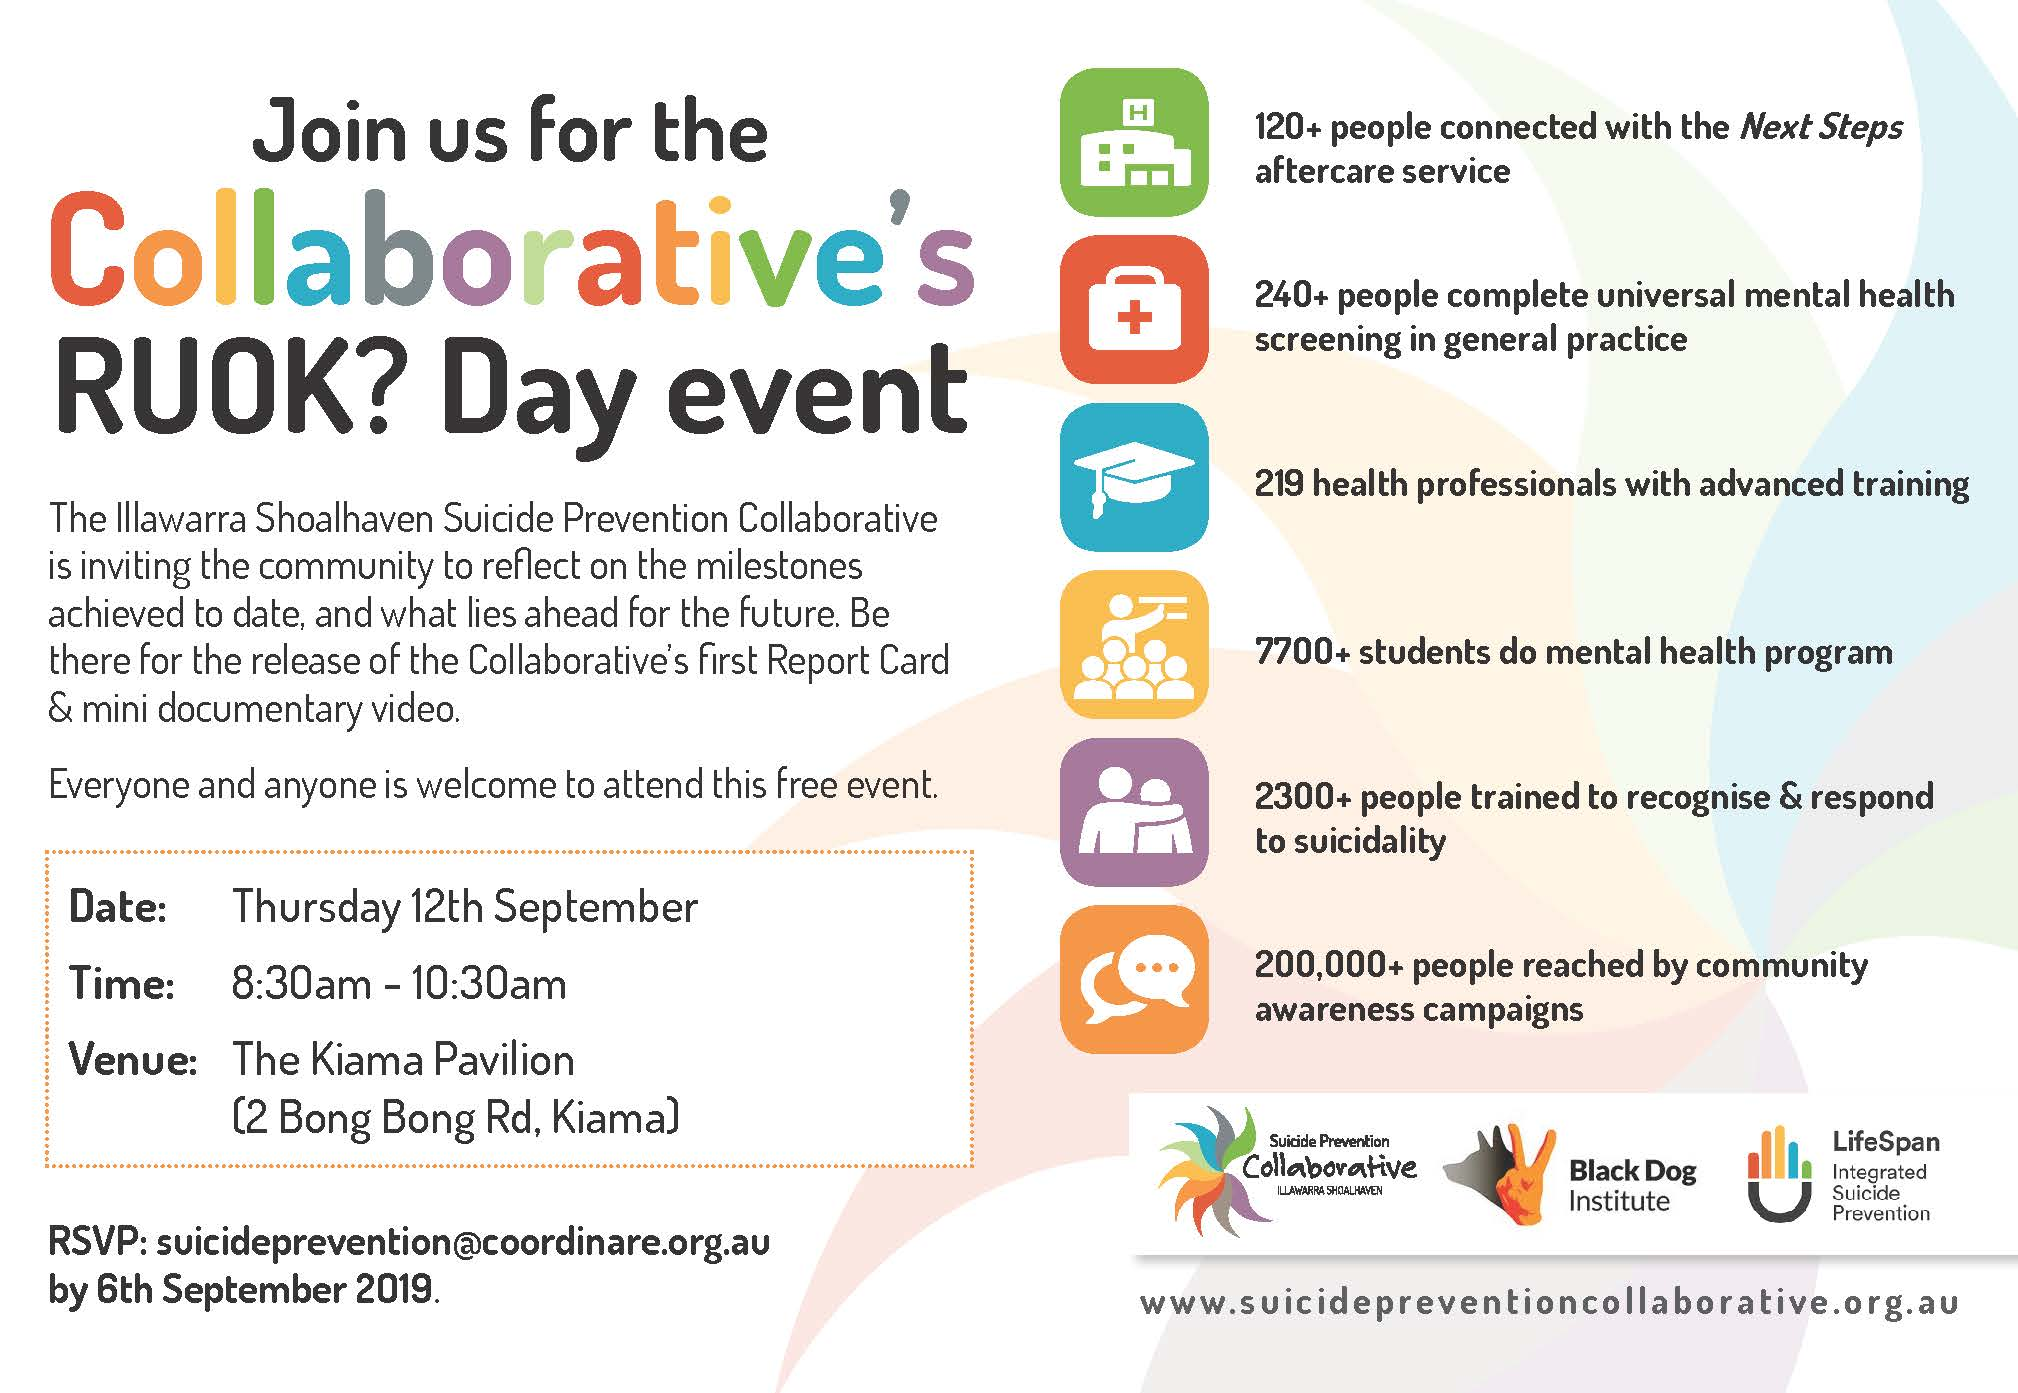 Come along to the Collaborative's R U OK? Day event!